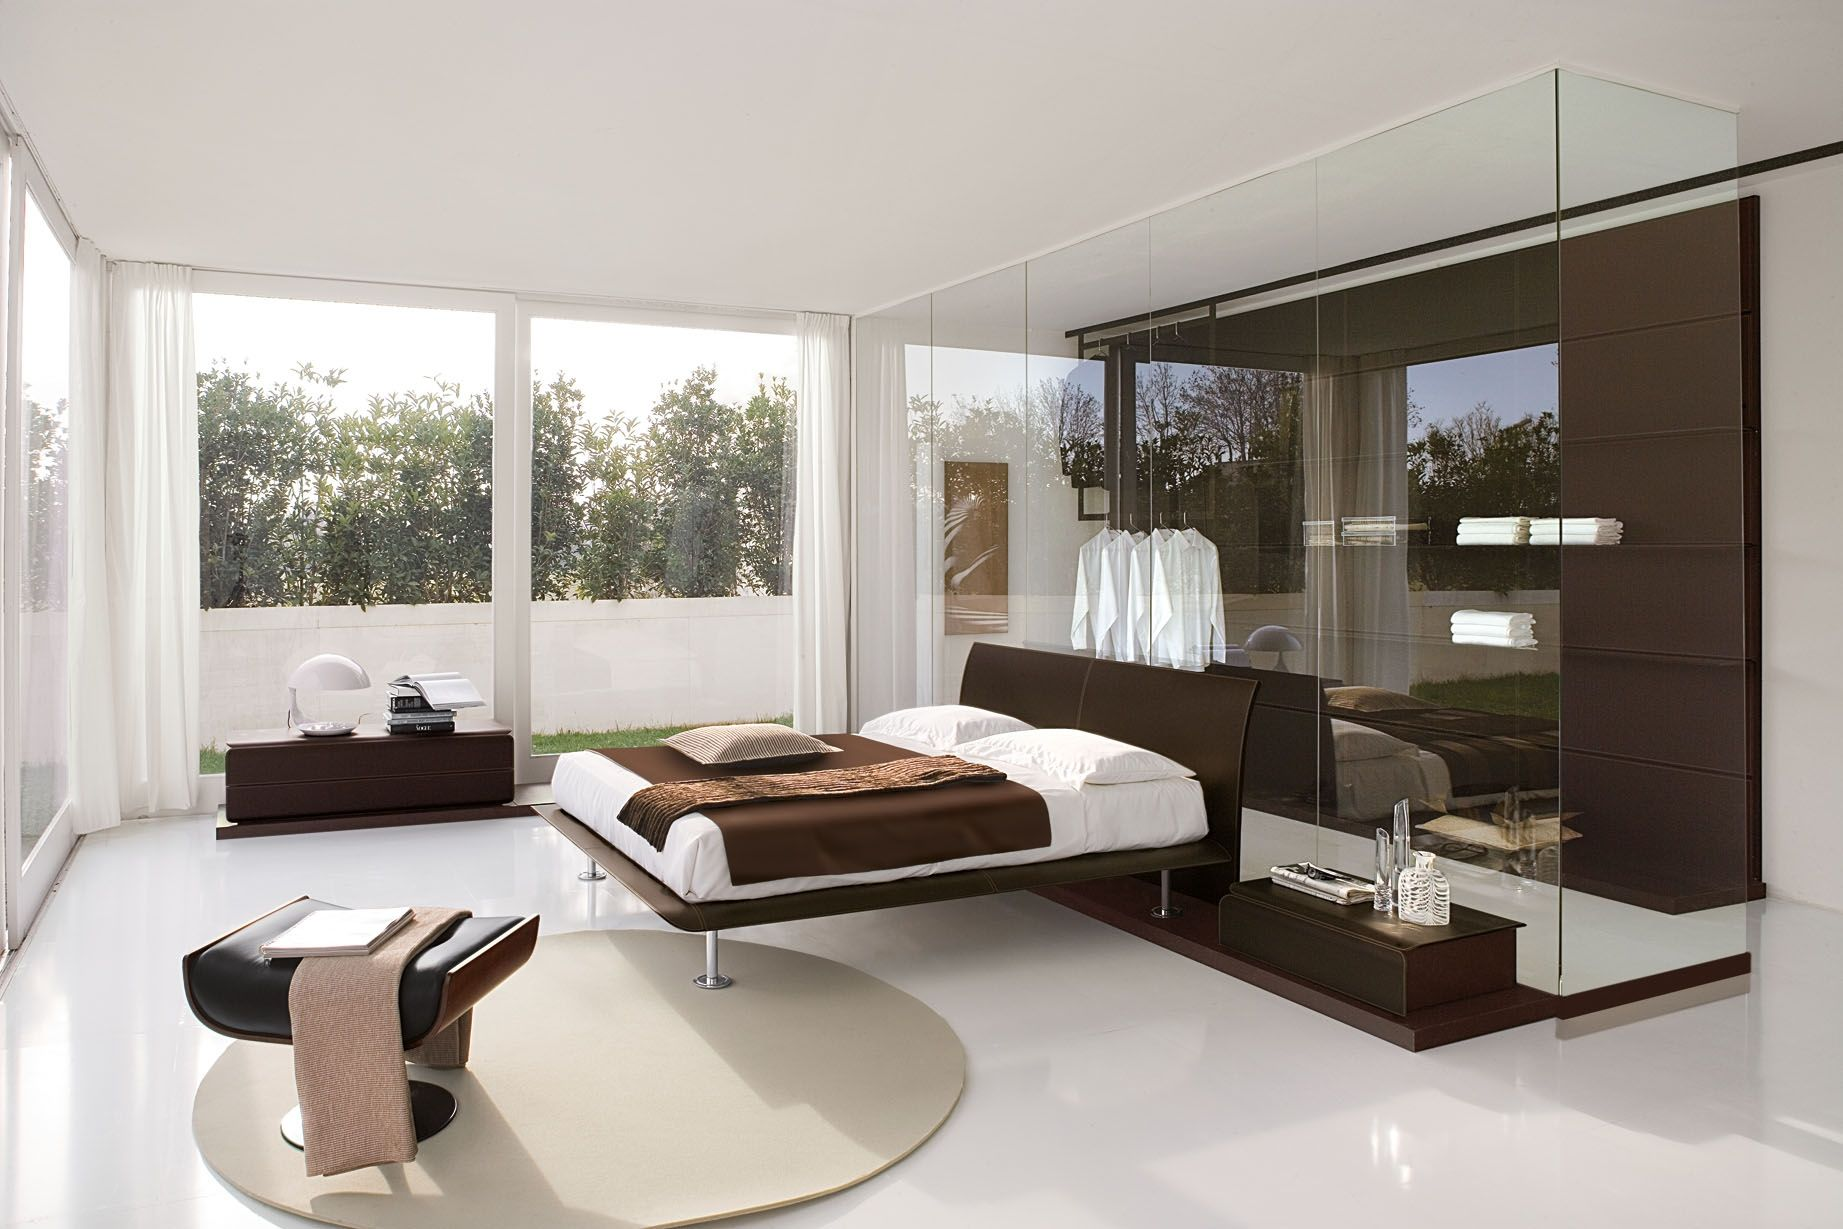 Caribbean Bedroom Design Fair Bedroom Designs Teenagers Sporty Cool Ideas Affordable Caribbean Decorating Inspiration